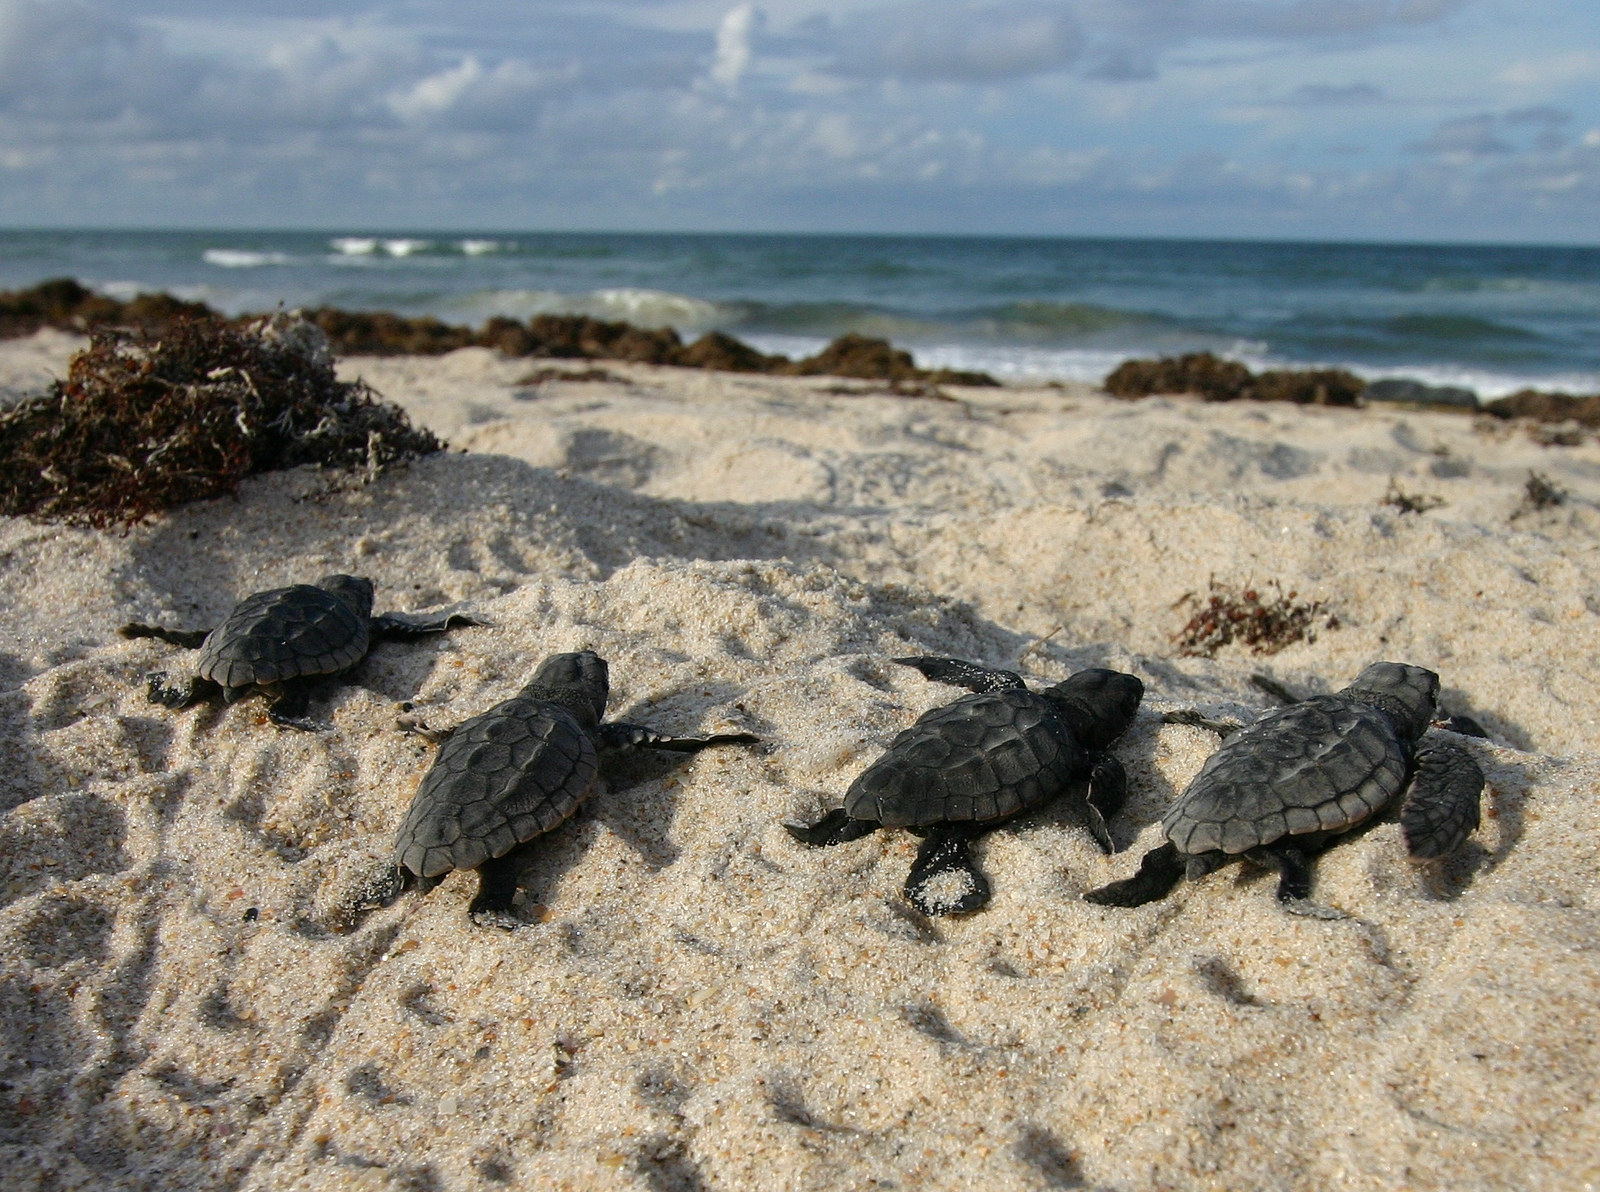 Development On Sea Turtle Nesting Beach